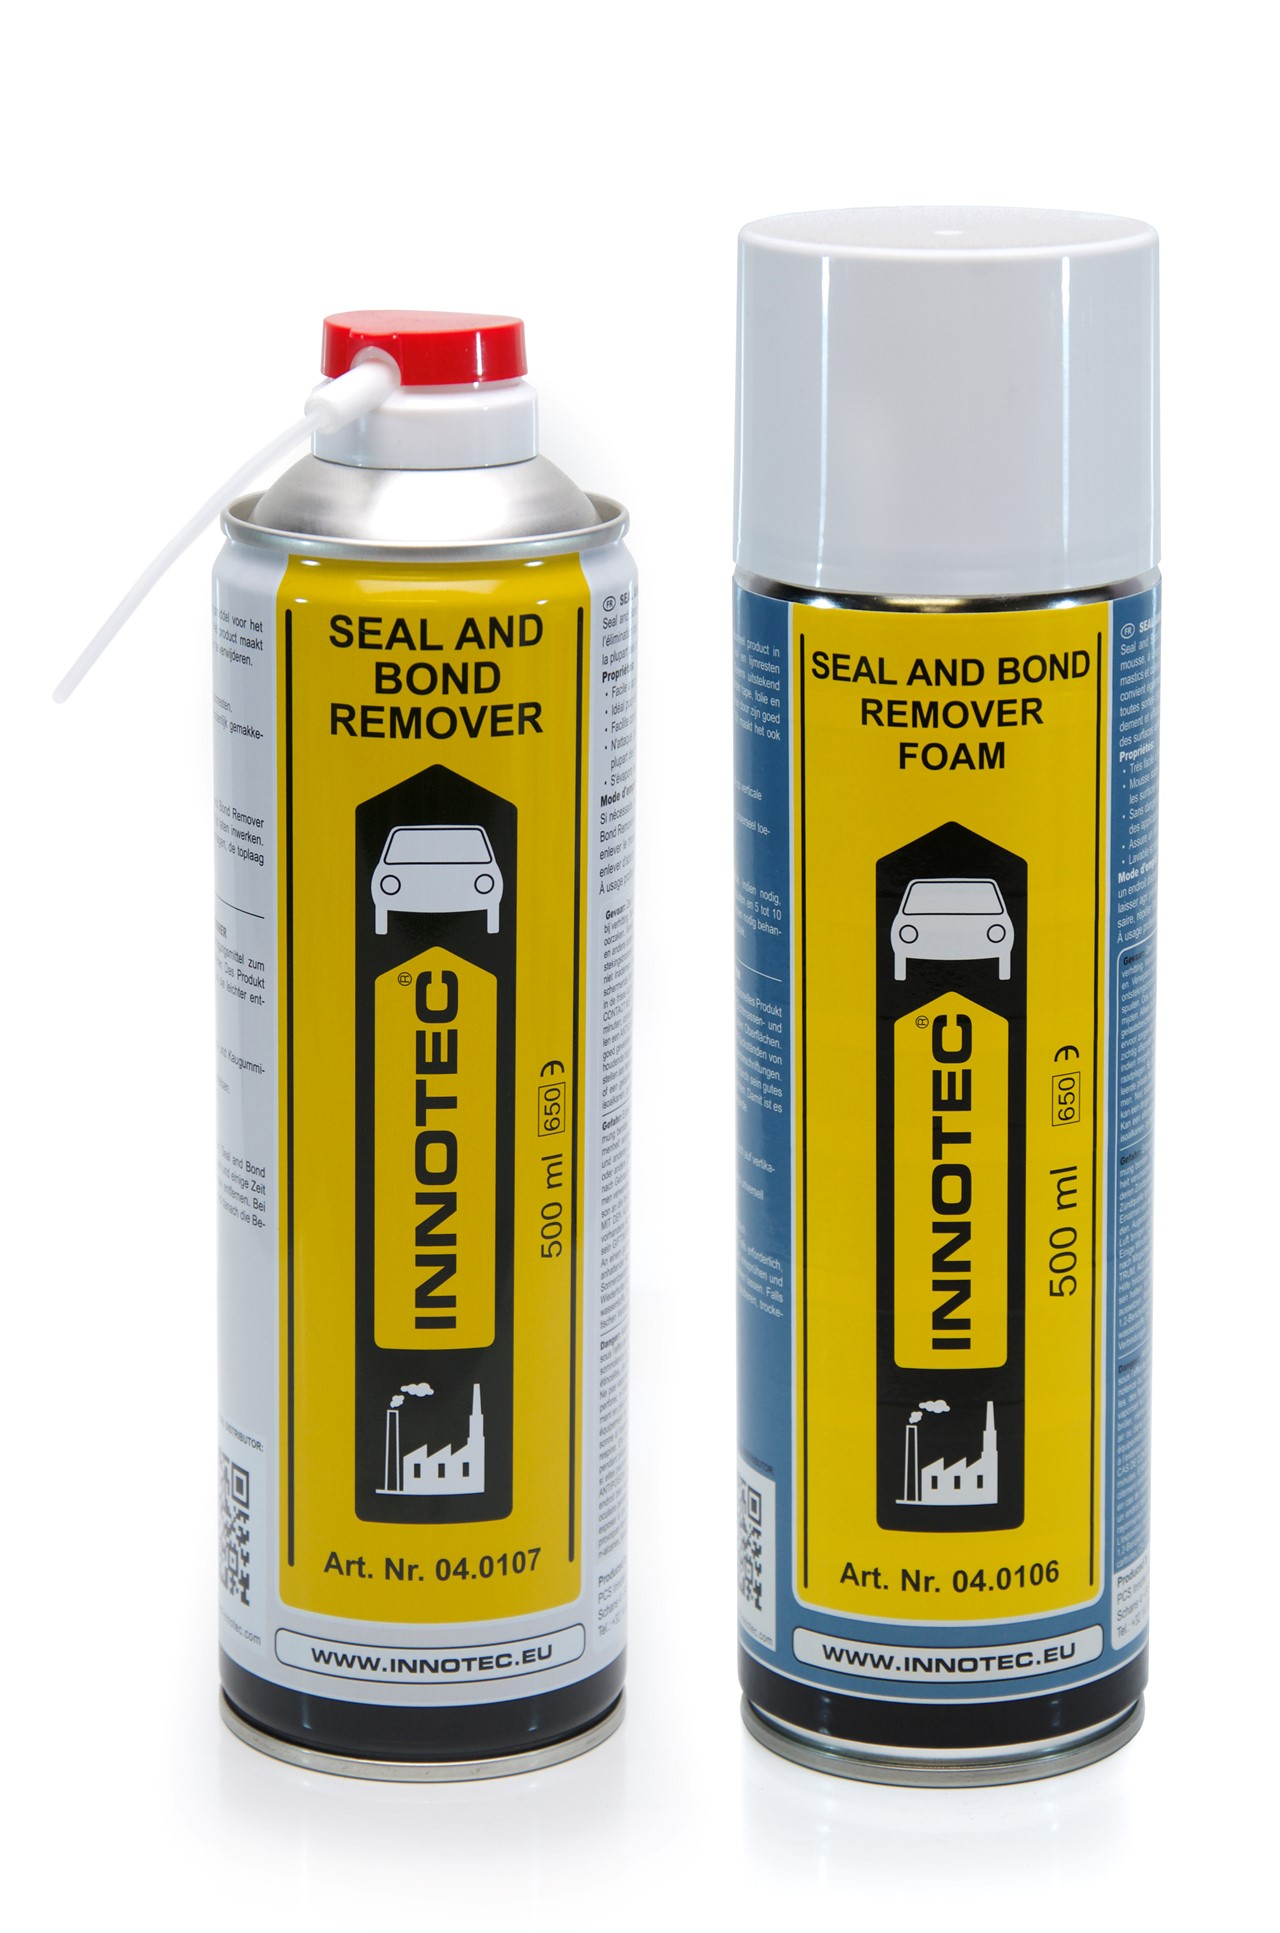 1245_Seal and Bond Remover groep.jpg